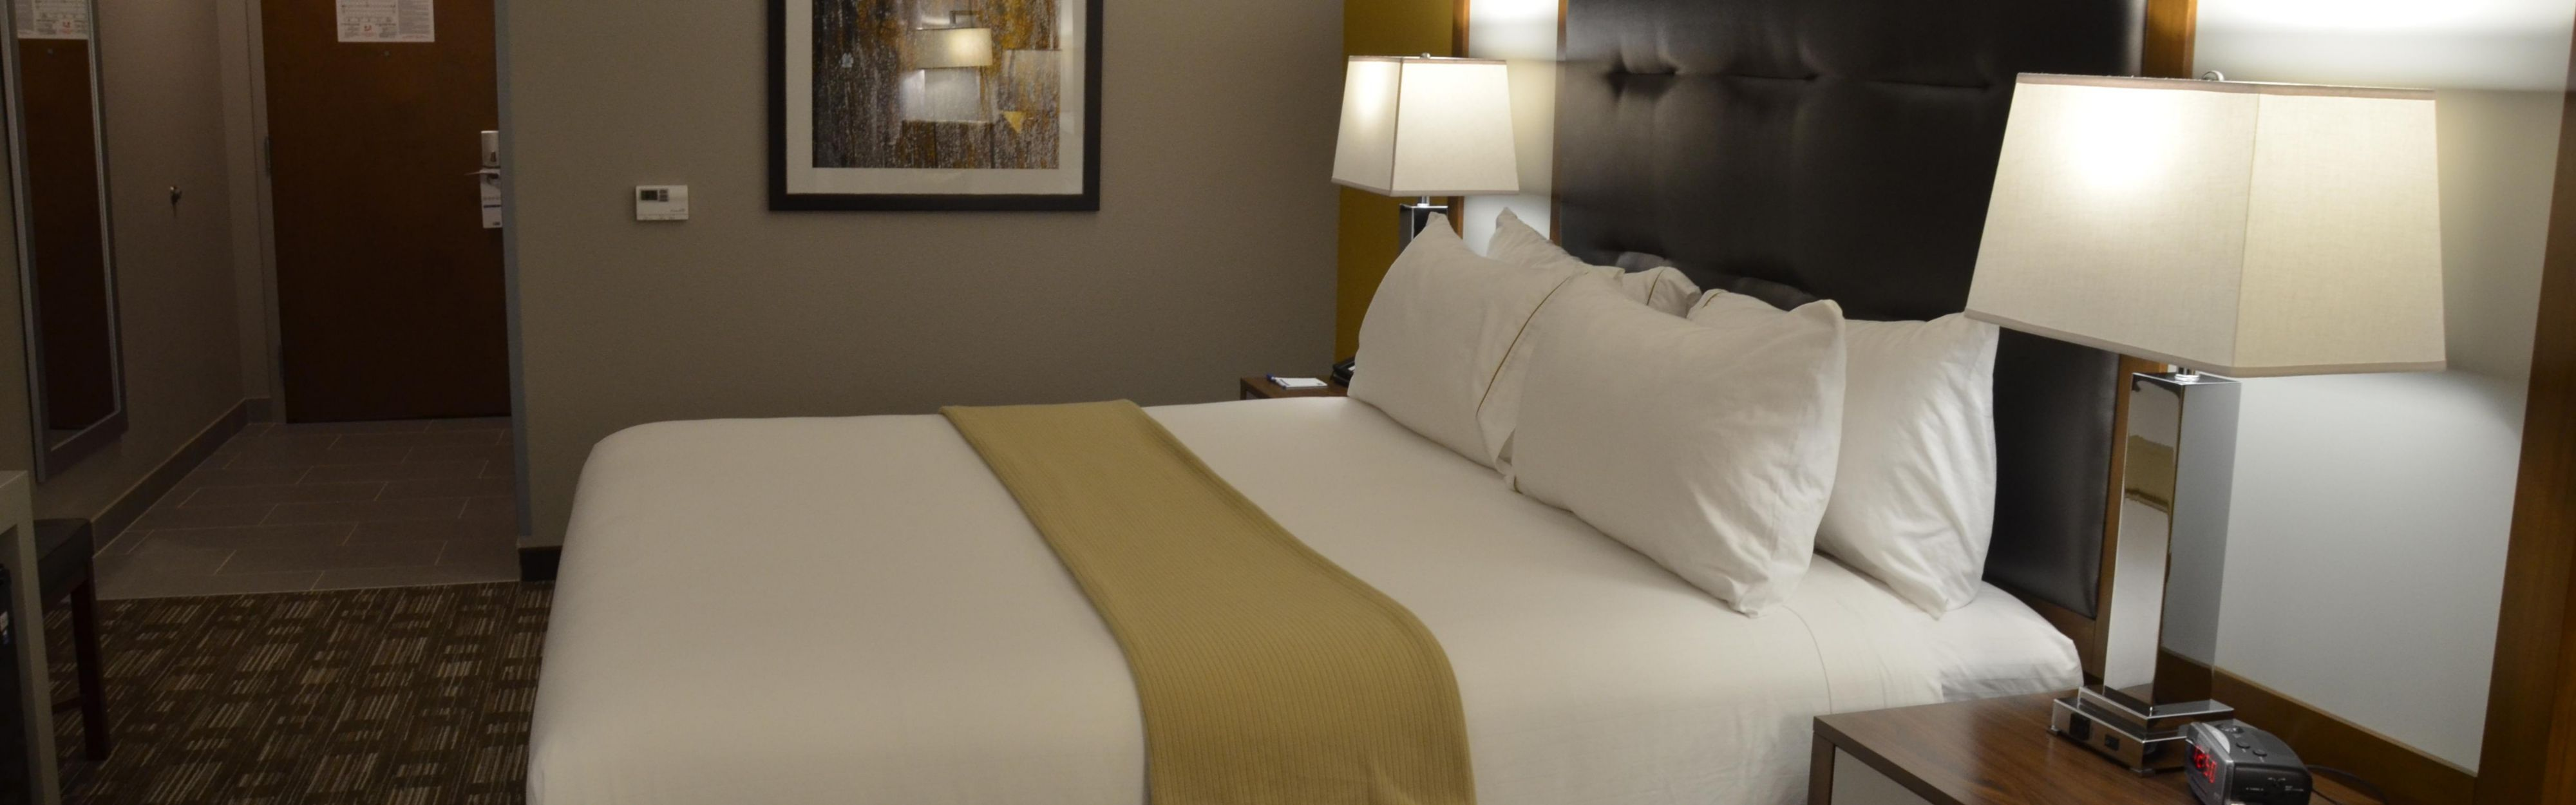 Holiday Inn Express & Suites Albany image 1